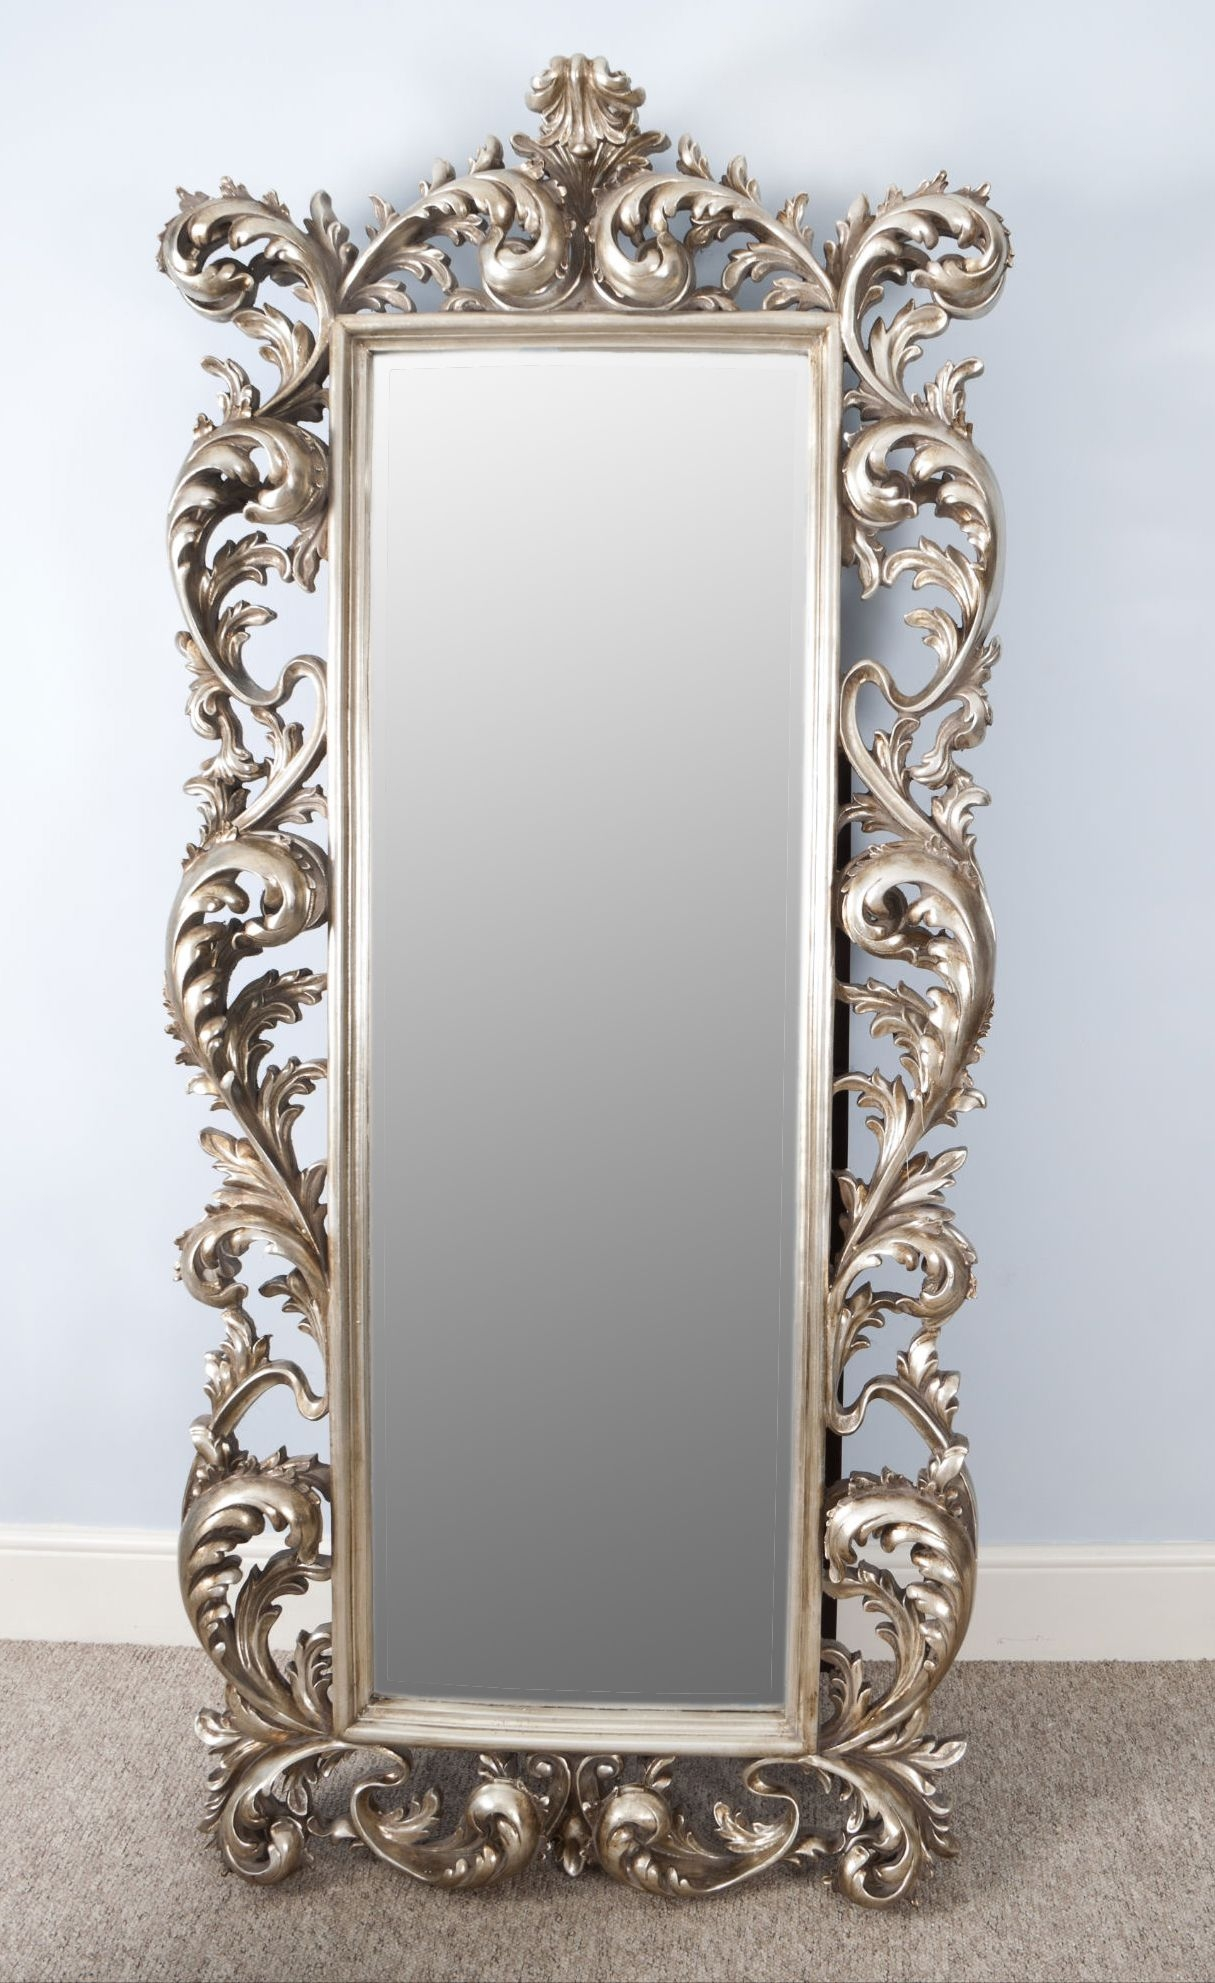 Classic Impression On Antique Wall Mirrors Vwho In Old Fashioned Wall Mirrors (Image 5 of 15)